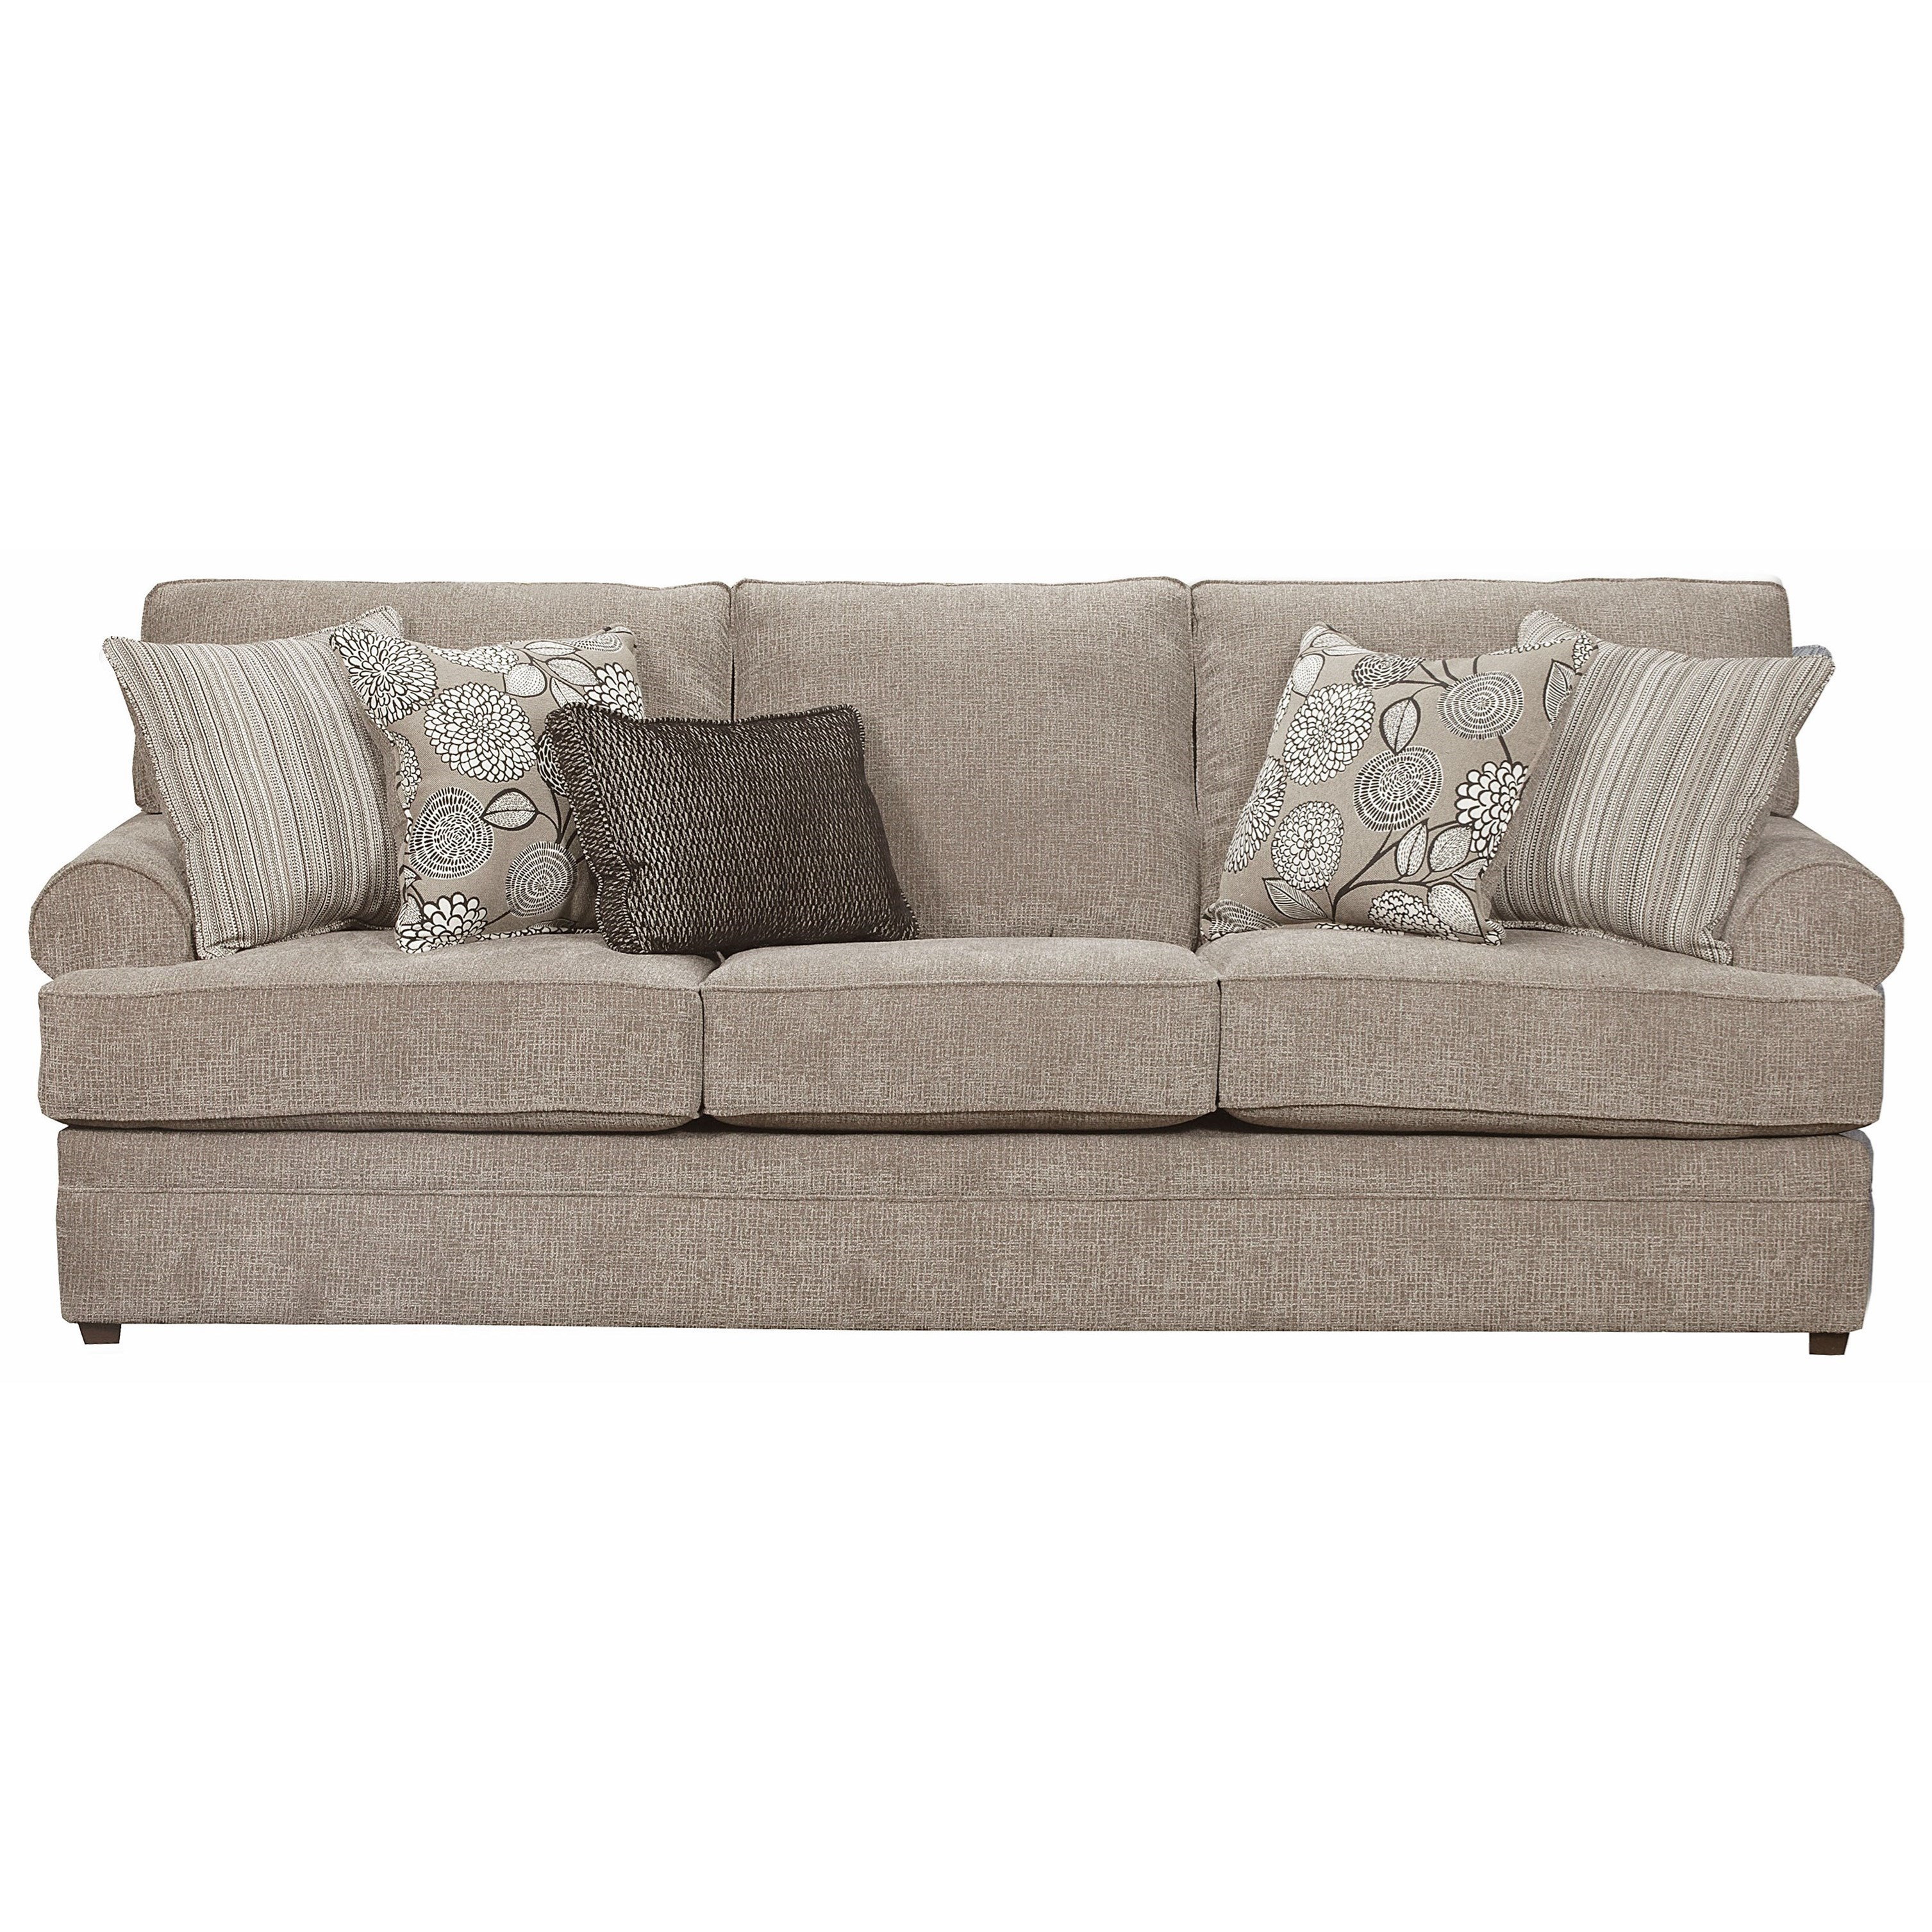 Captivating Simmons Upholstery 8530 BRTransitional Sofa ...